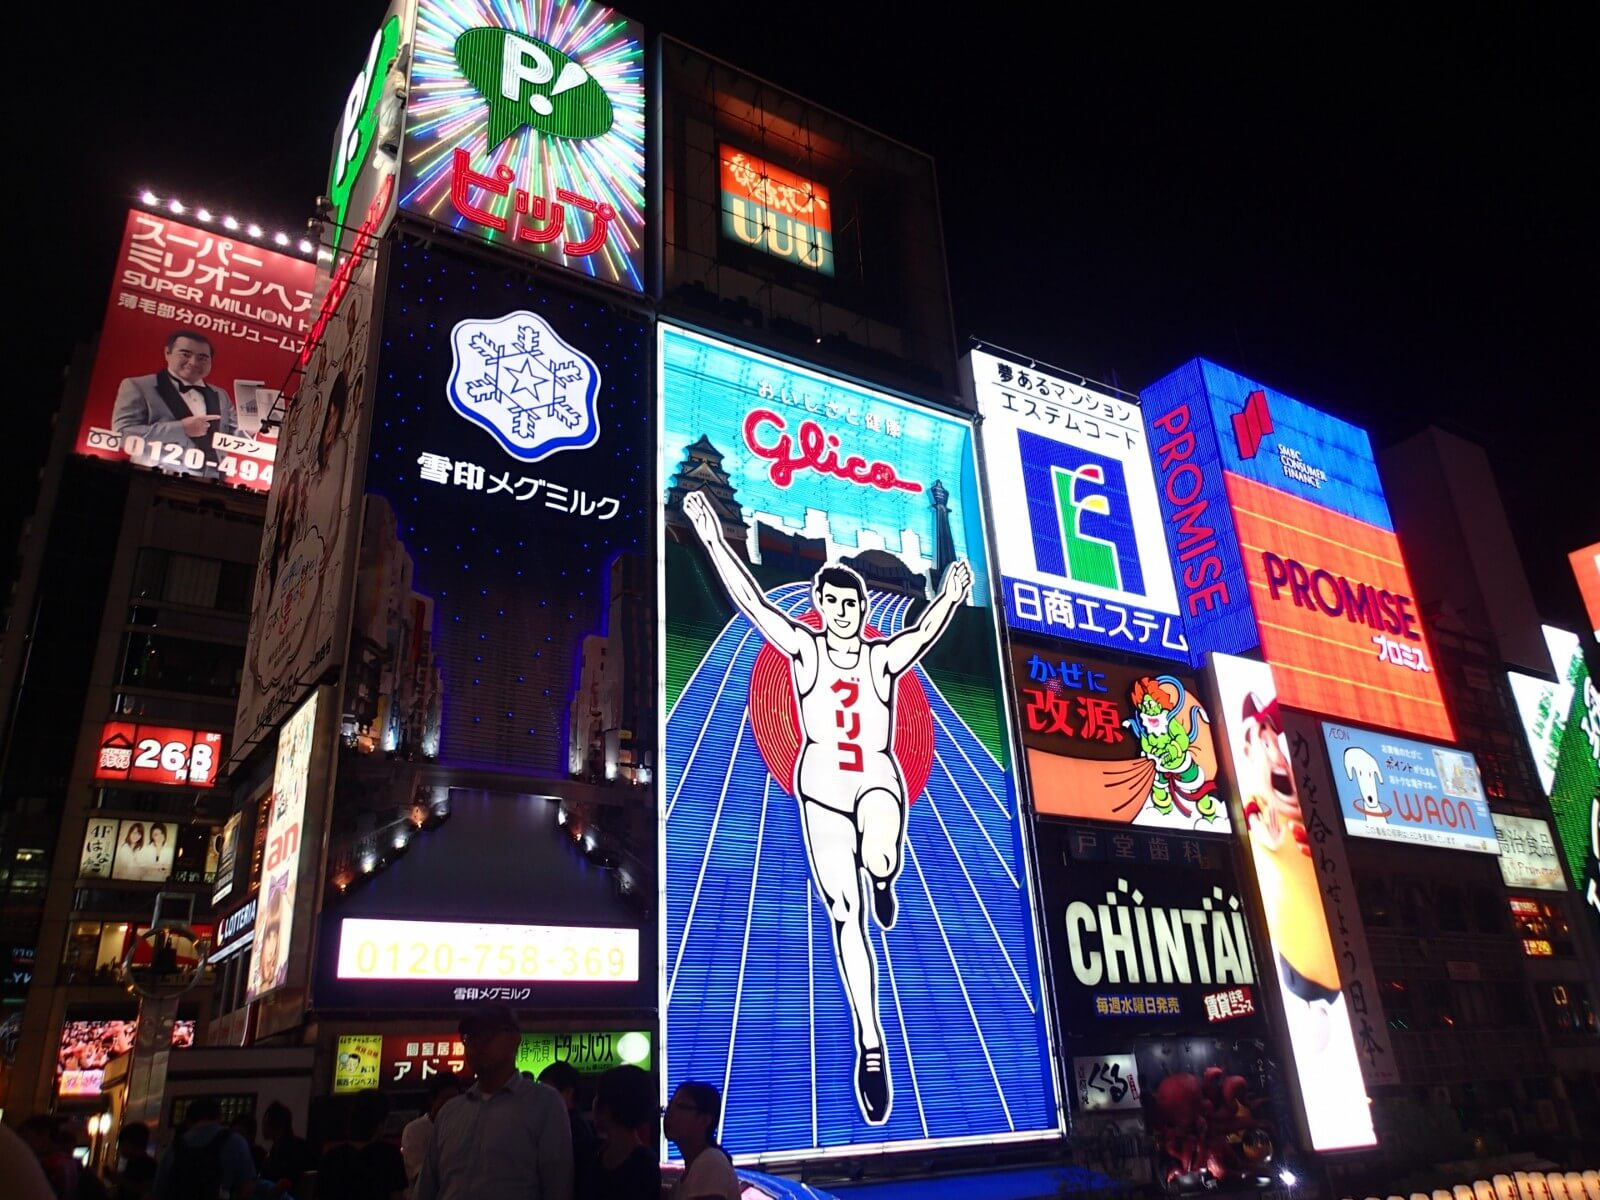 The famous landmark, Glico Running Man